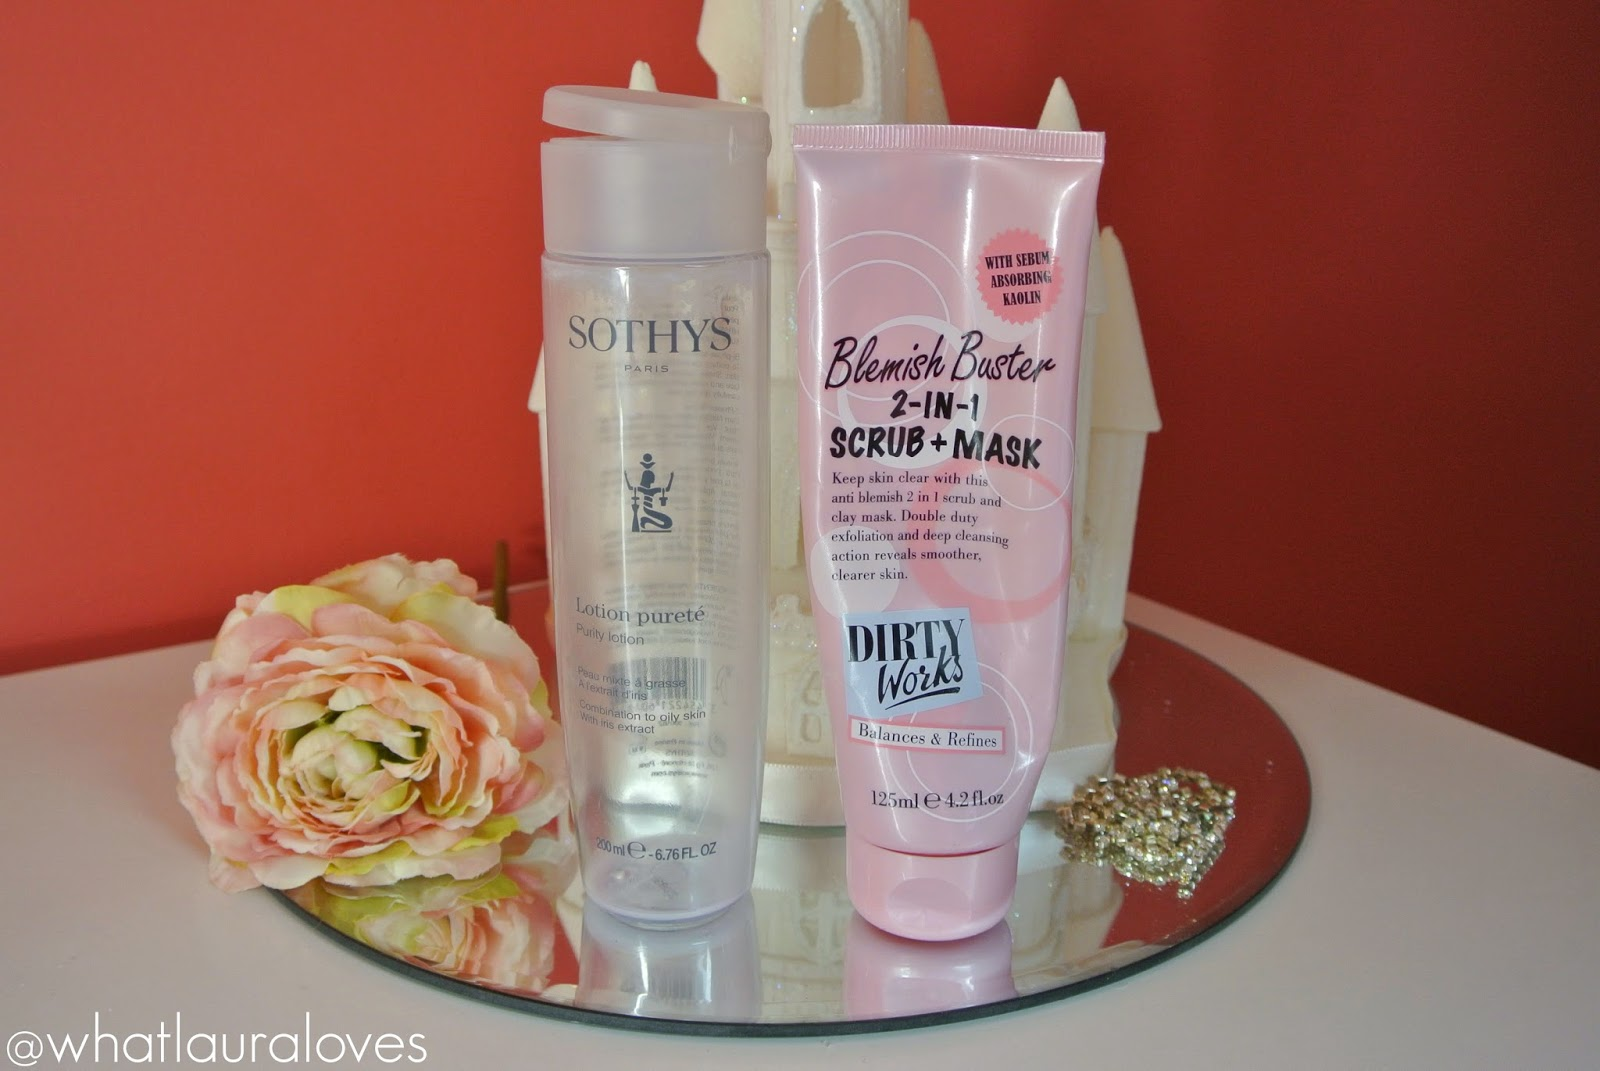 Sothys Purity Lotion Dirty Works Blemish Buster